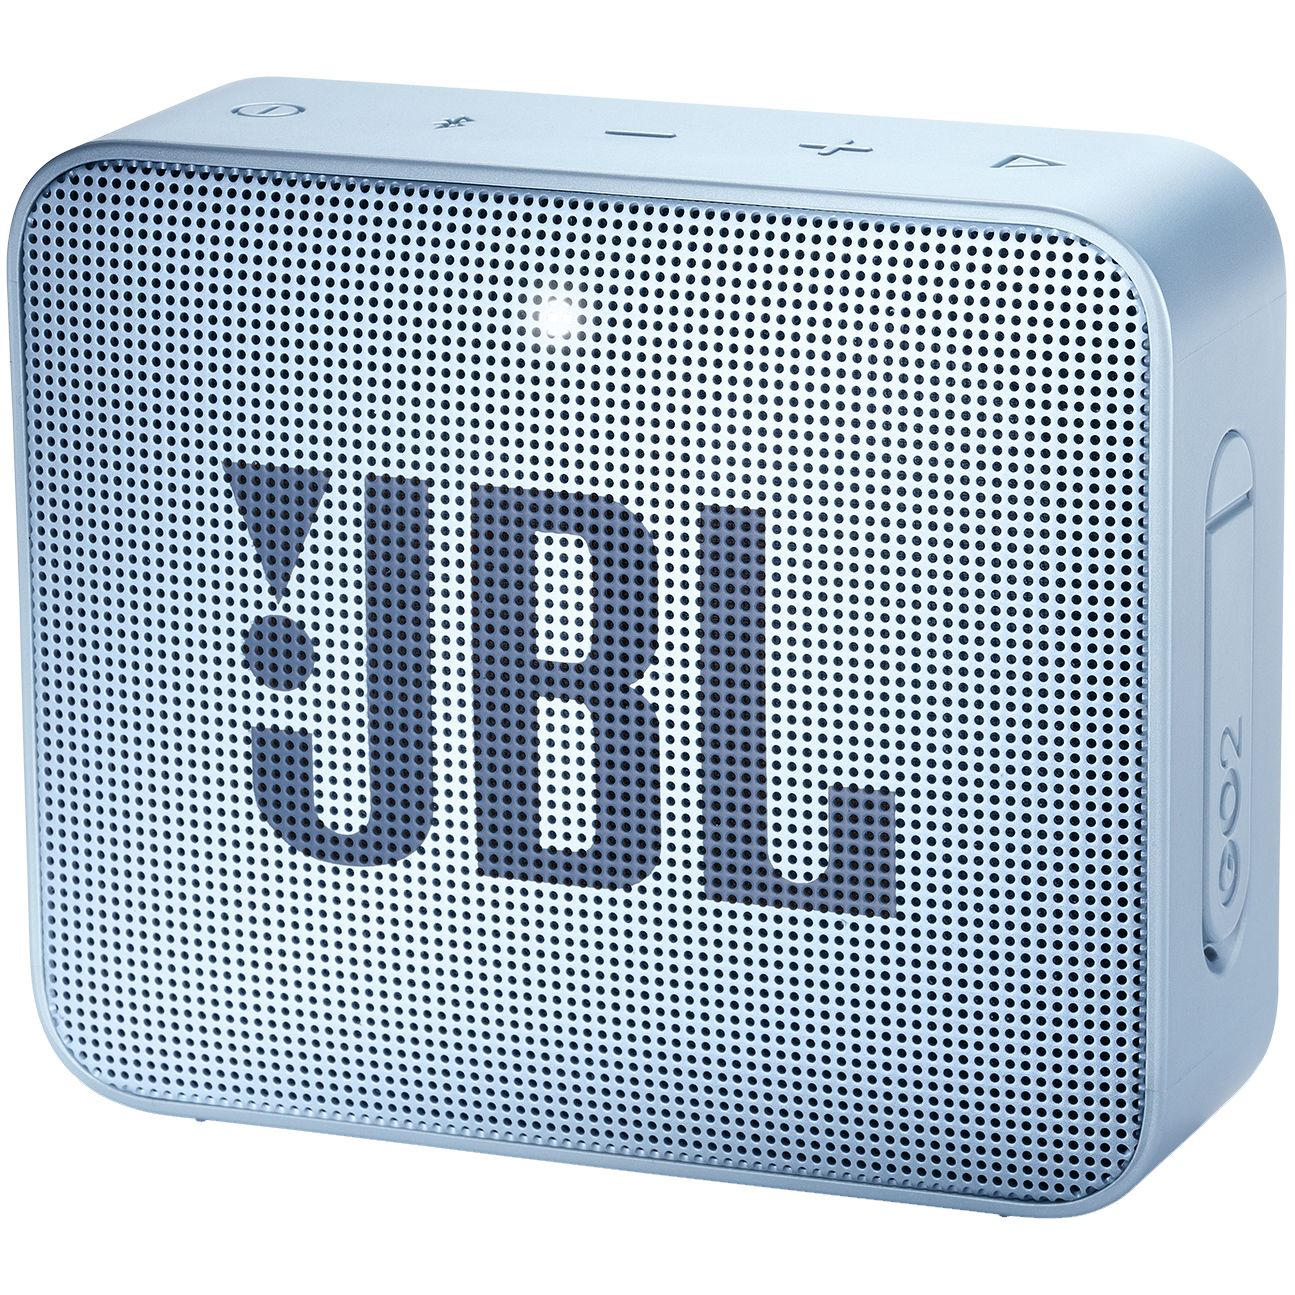 Boxa portabila JBL Go 2, Wireless, Bluetooth, IPX7 Waterproof, Icecube Cyan